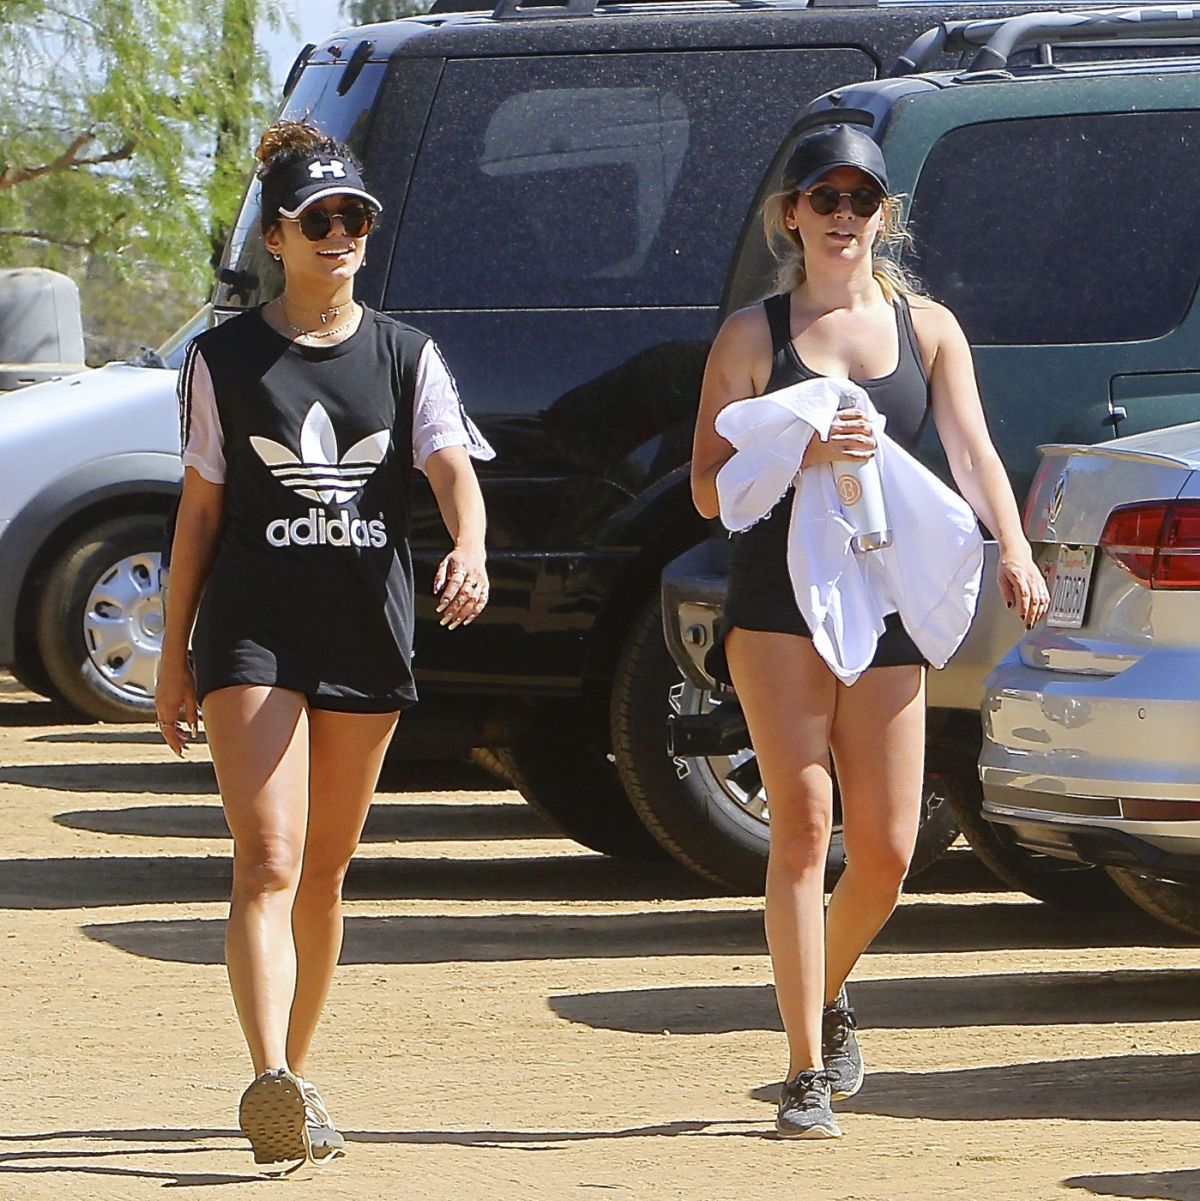 ASHLEY TISDALE and VANESSA HUDGENS Out Hiking in Los angeles -09/29/16 mq